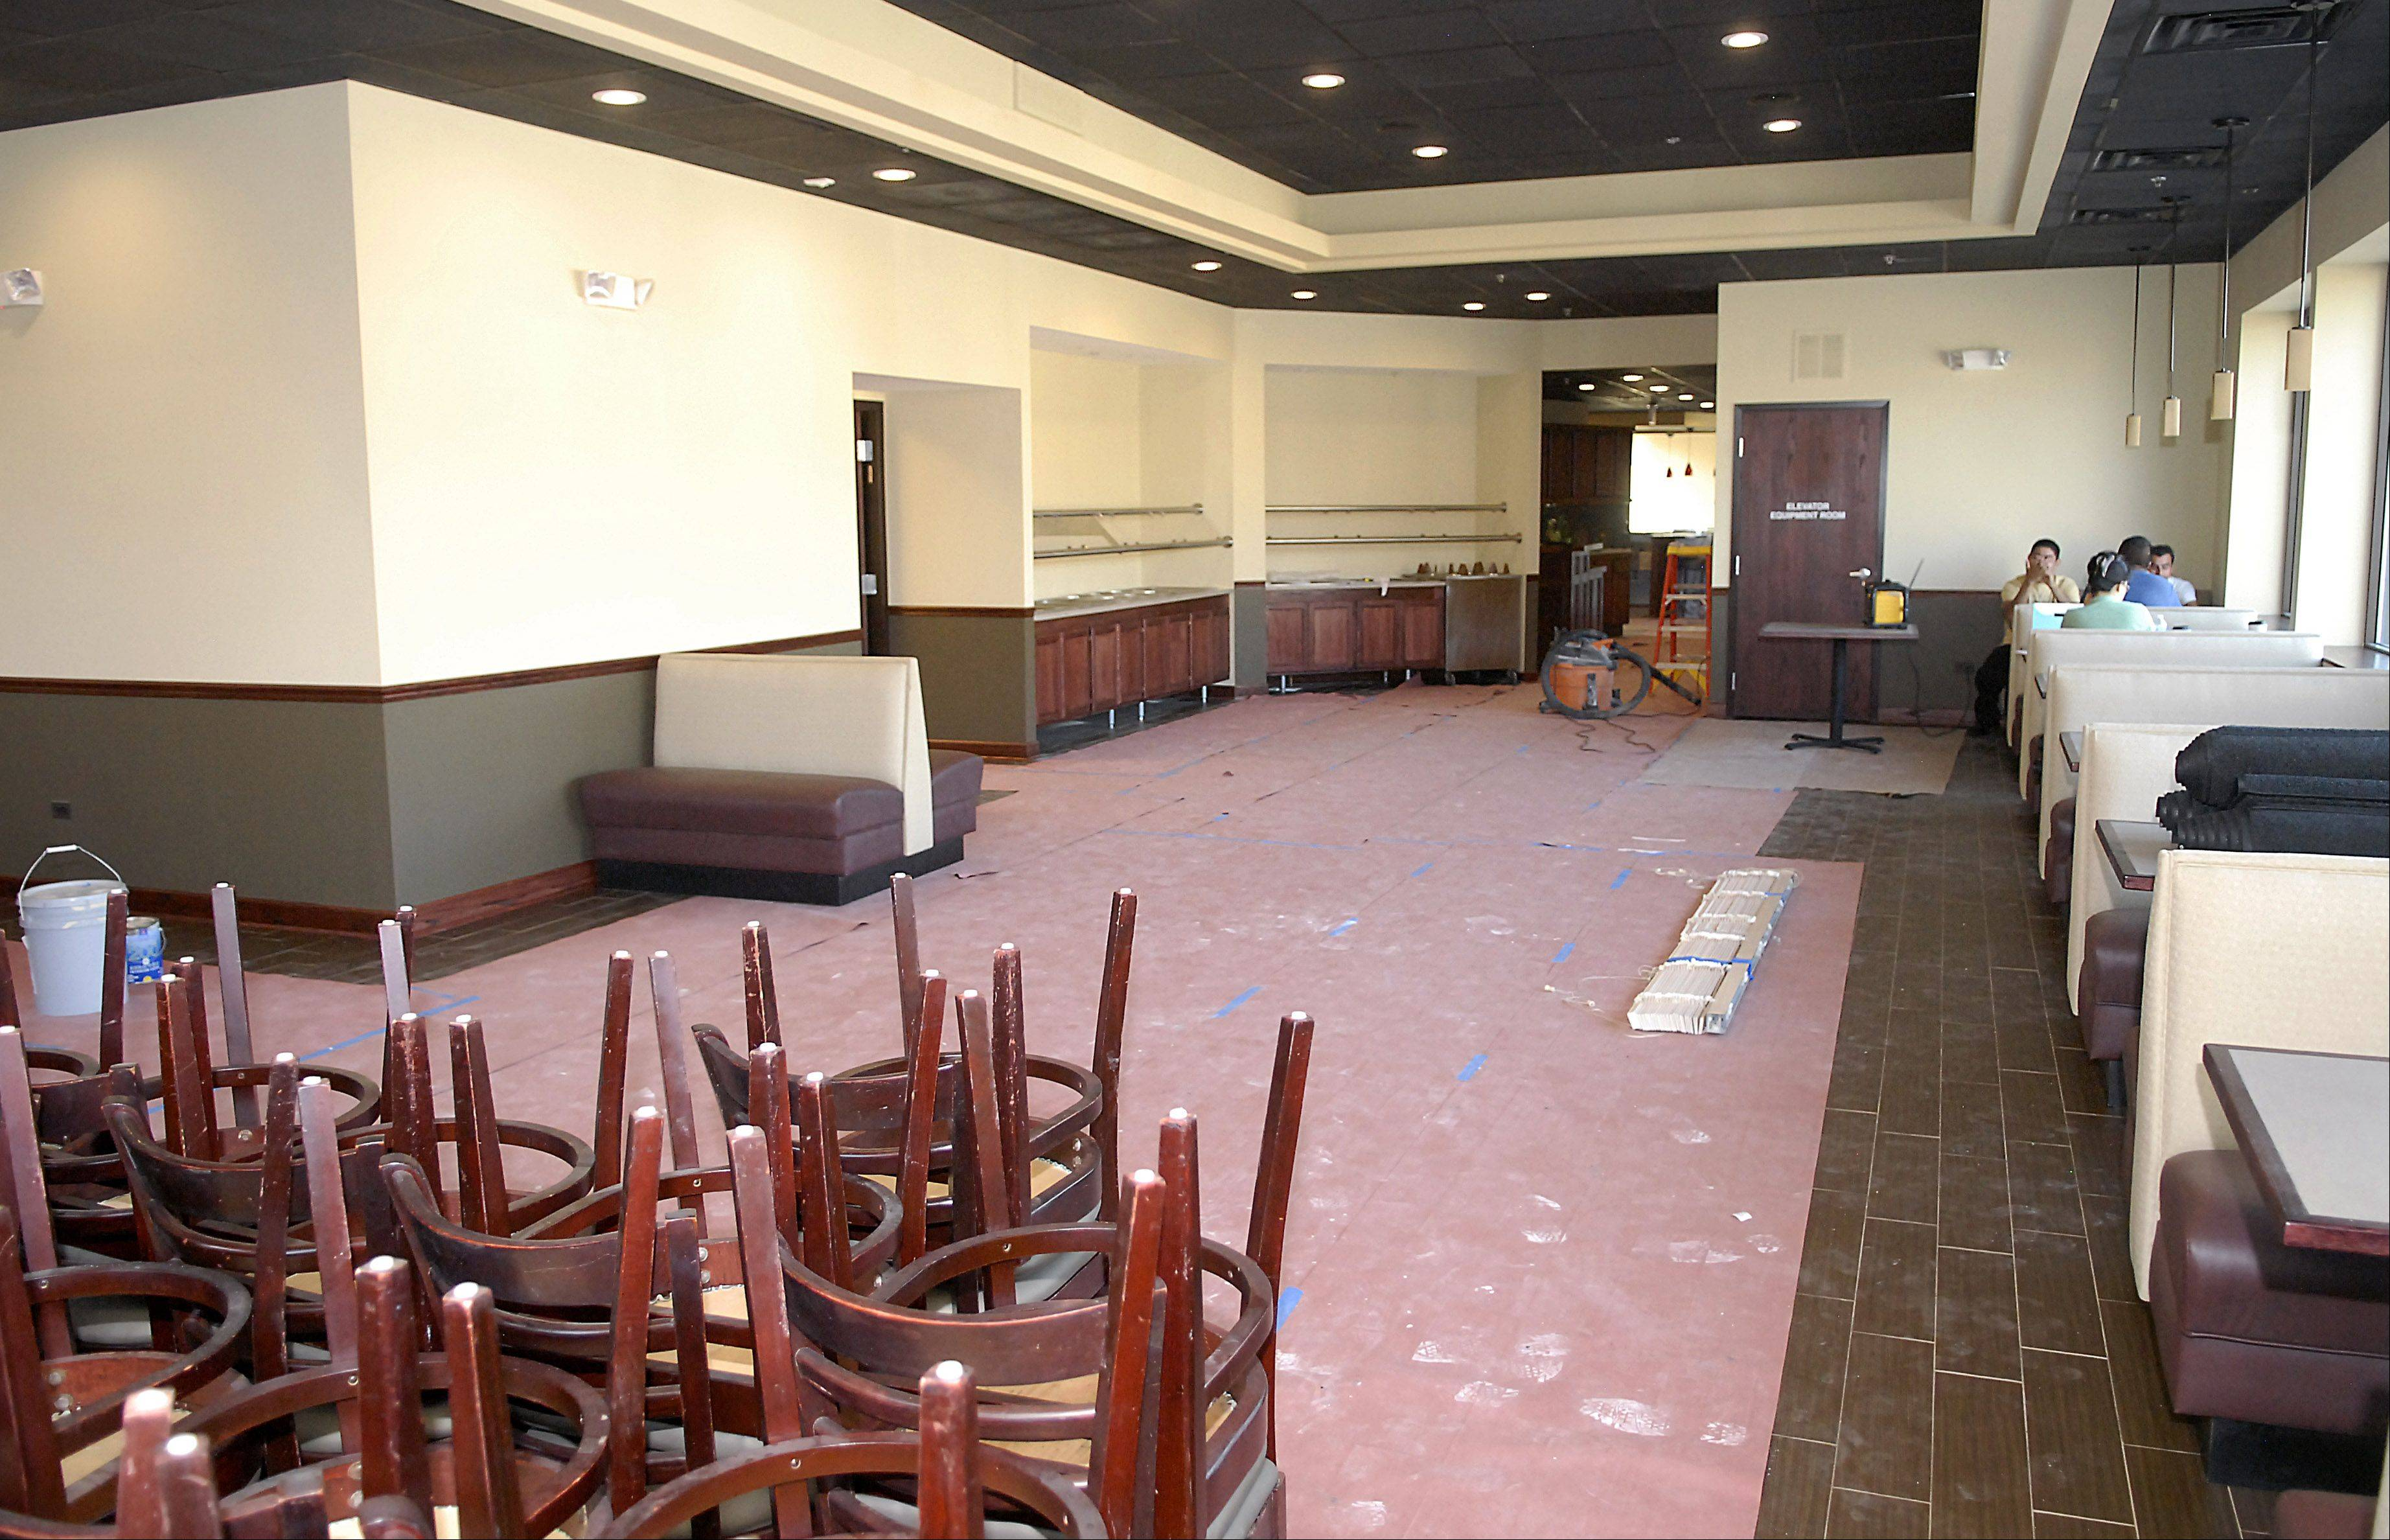 The main dining area of the Szechwan Restaurant in downtown St. Charles will be slightly larger when the business reopens, which is expected next week.